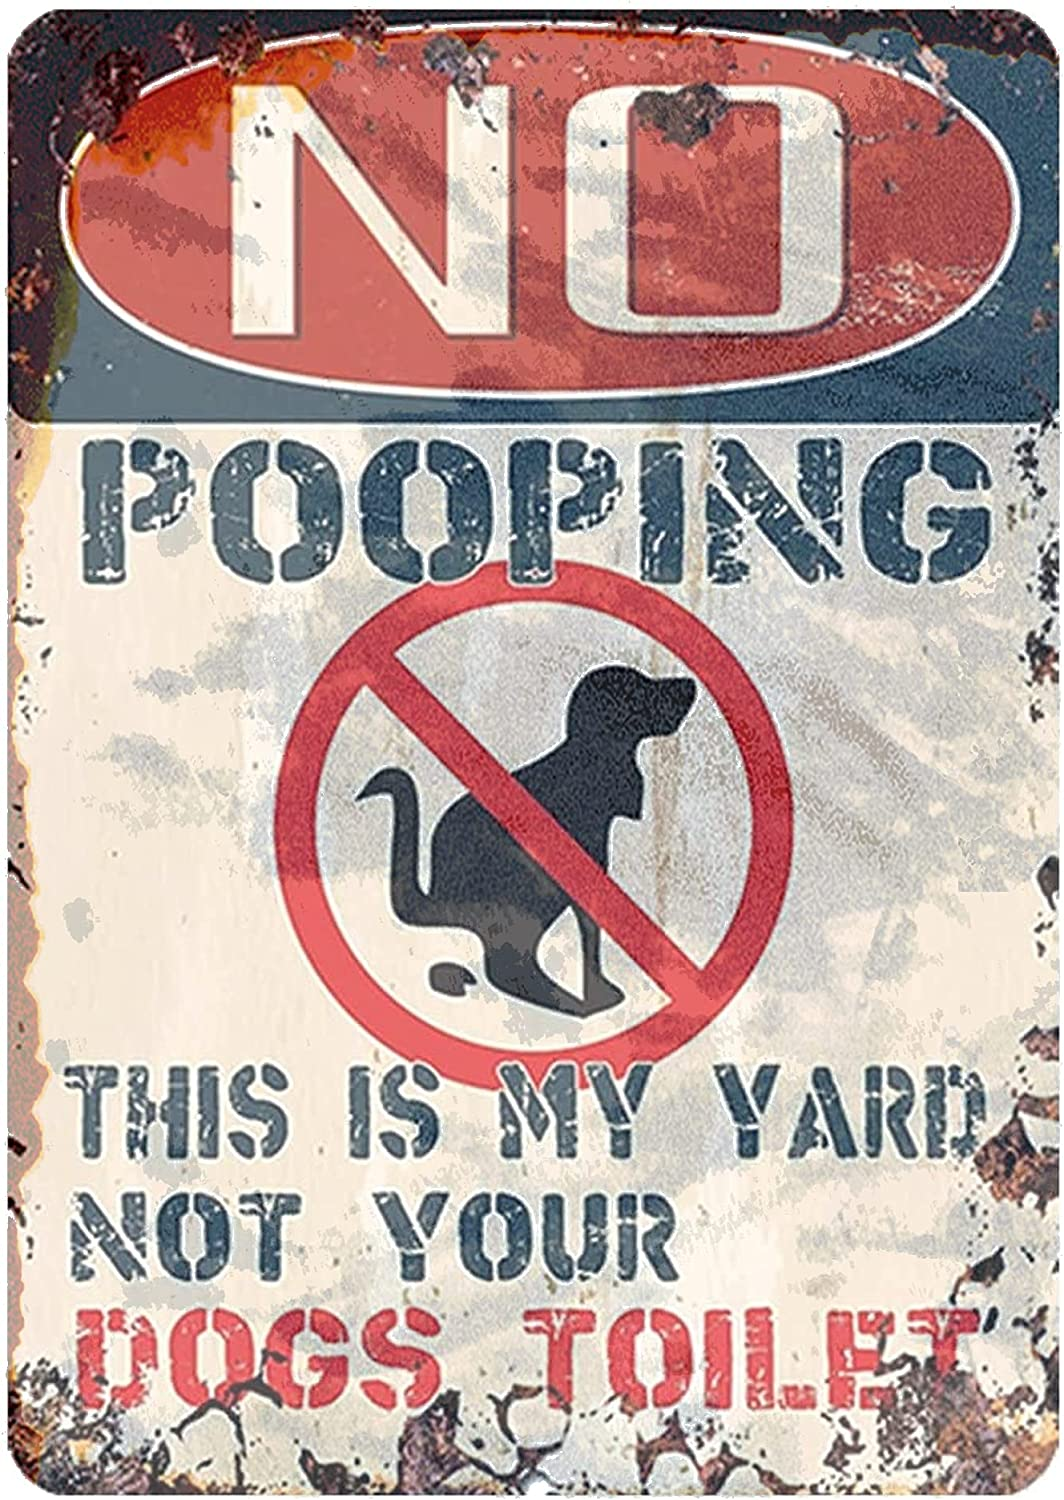 J.DXHYA Man Cave Free shipping National uniform free shipping Decor 2 Pieces No is Dog This Pooping Signs My